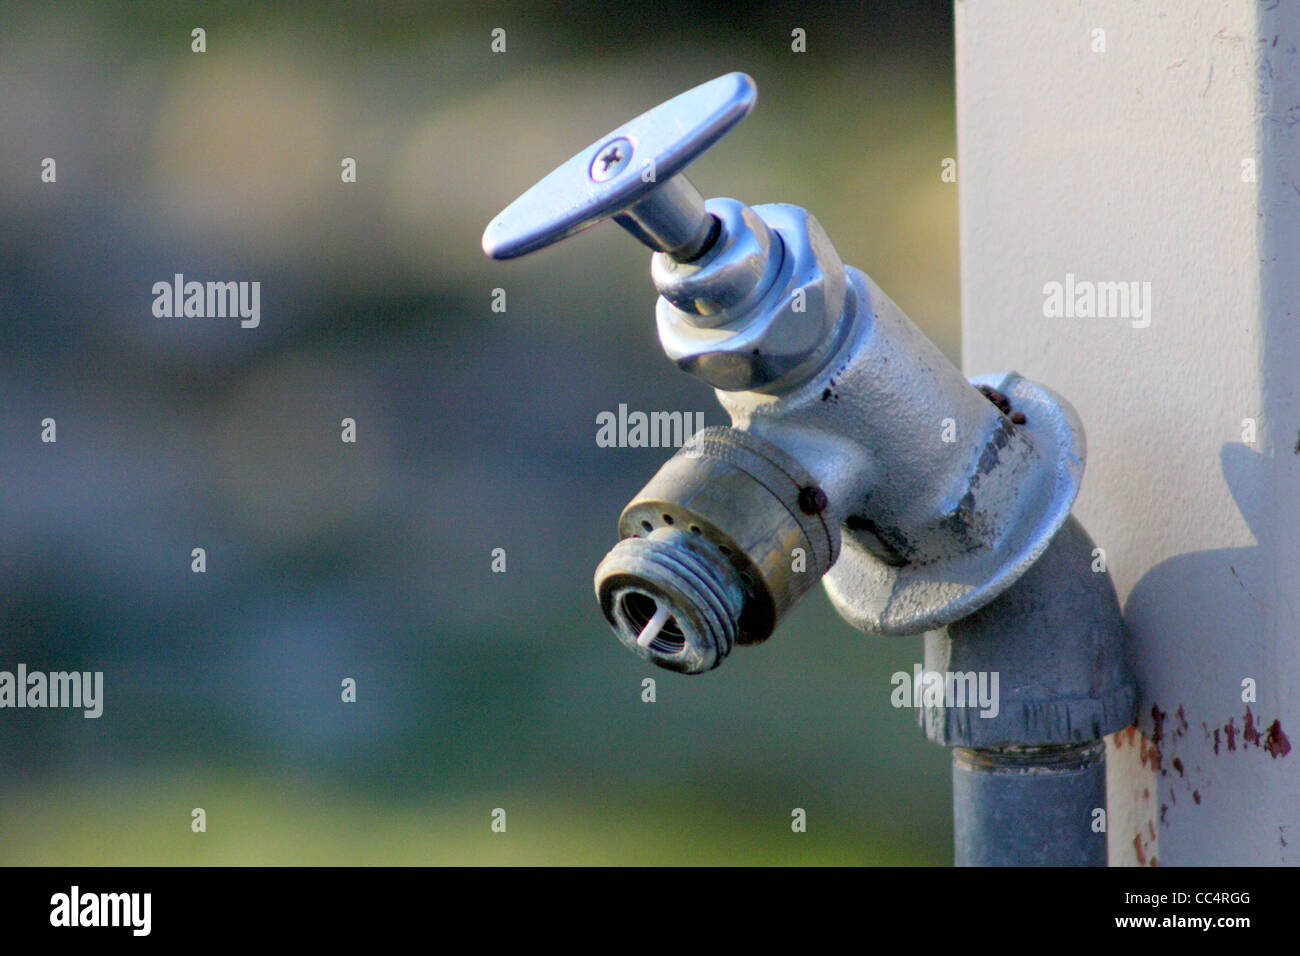 Water Spicket Stock Photos & Water Spicket Stock Images - Alamy